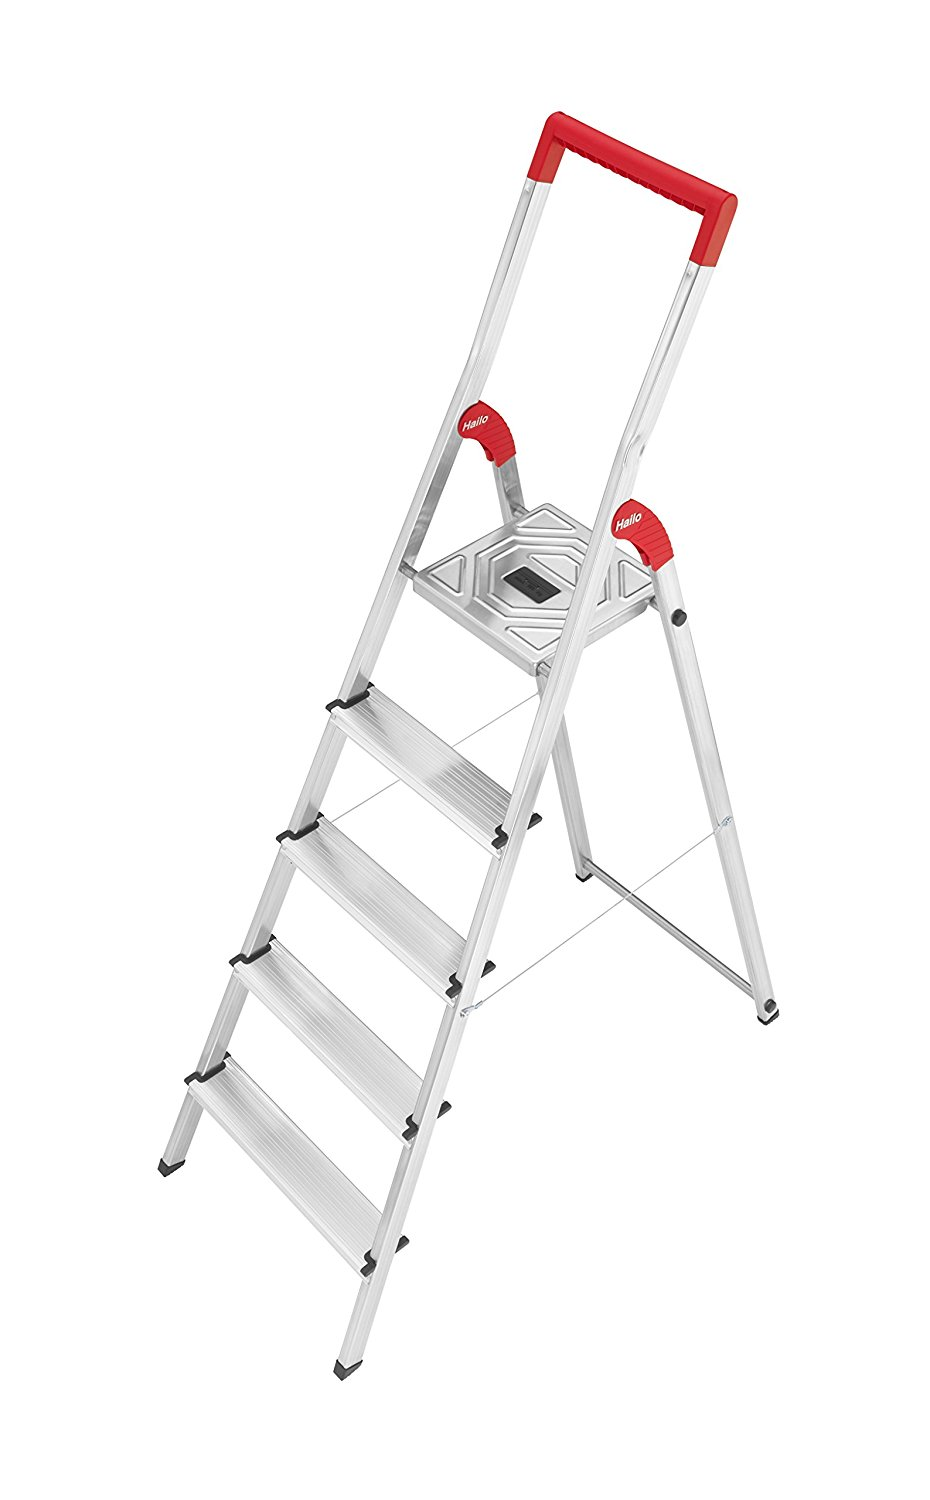 Hailo Profistep Xxl Cheap Hailo Ladders Find Hailo Ladders Deals On Line At Alibaba